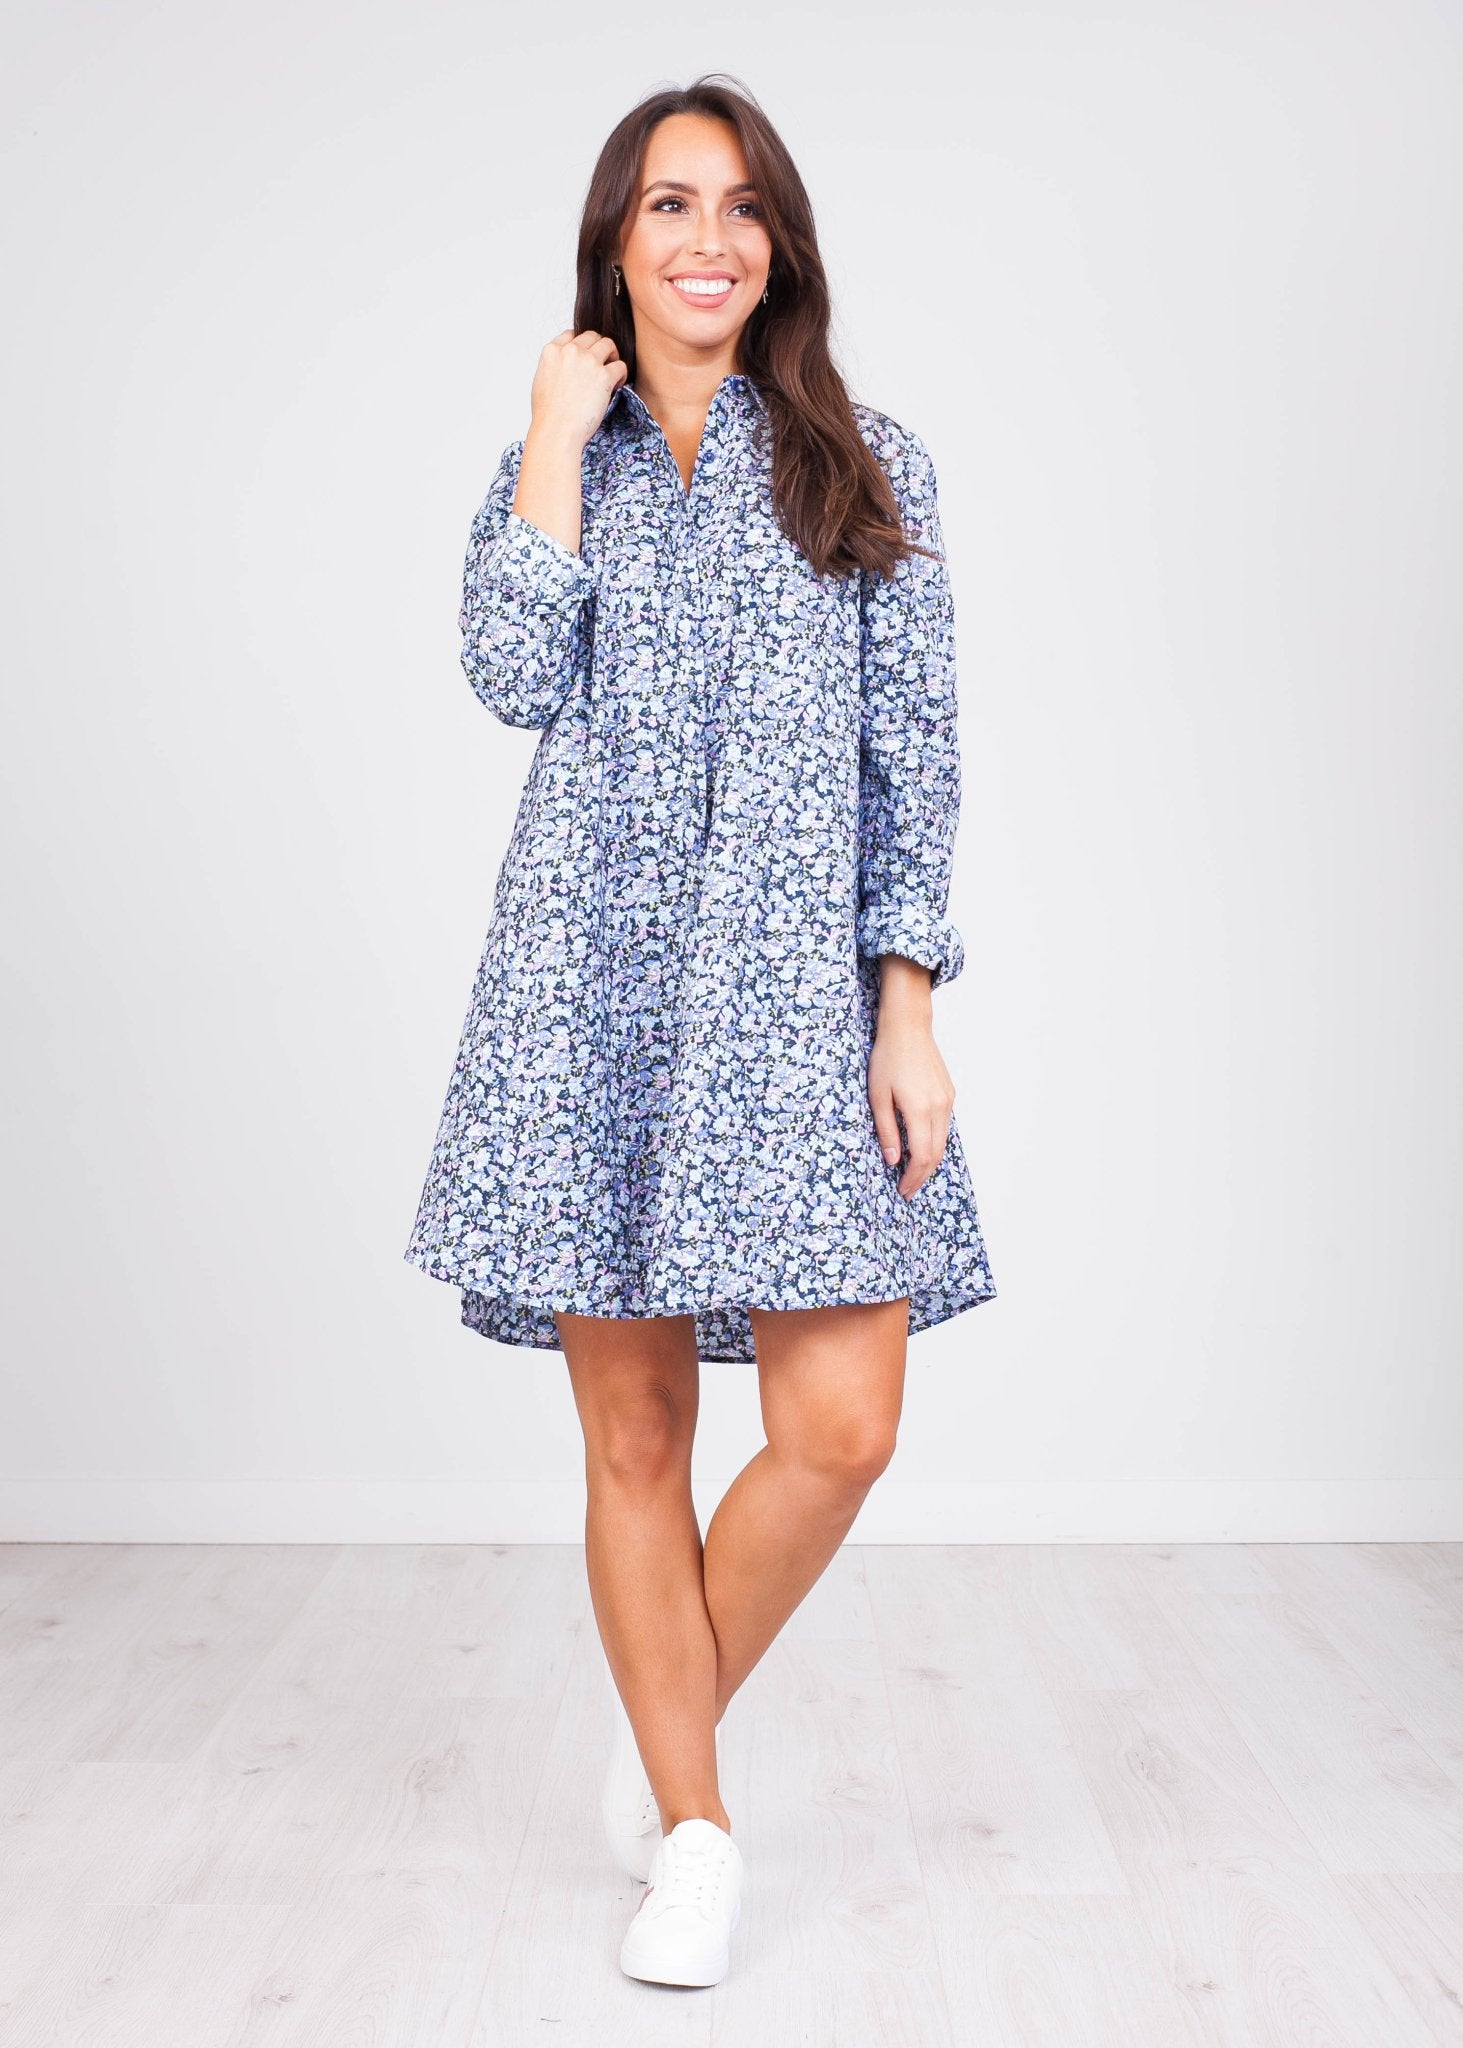 Fifi Floral Blue Mini Dress - The Walk in Wardrobe